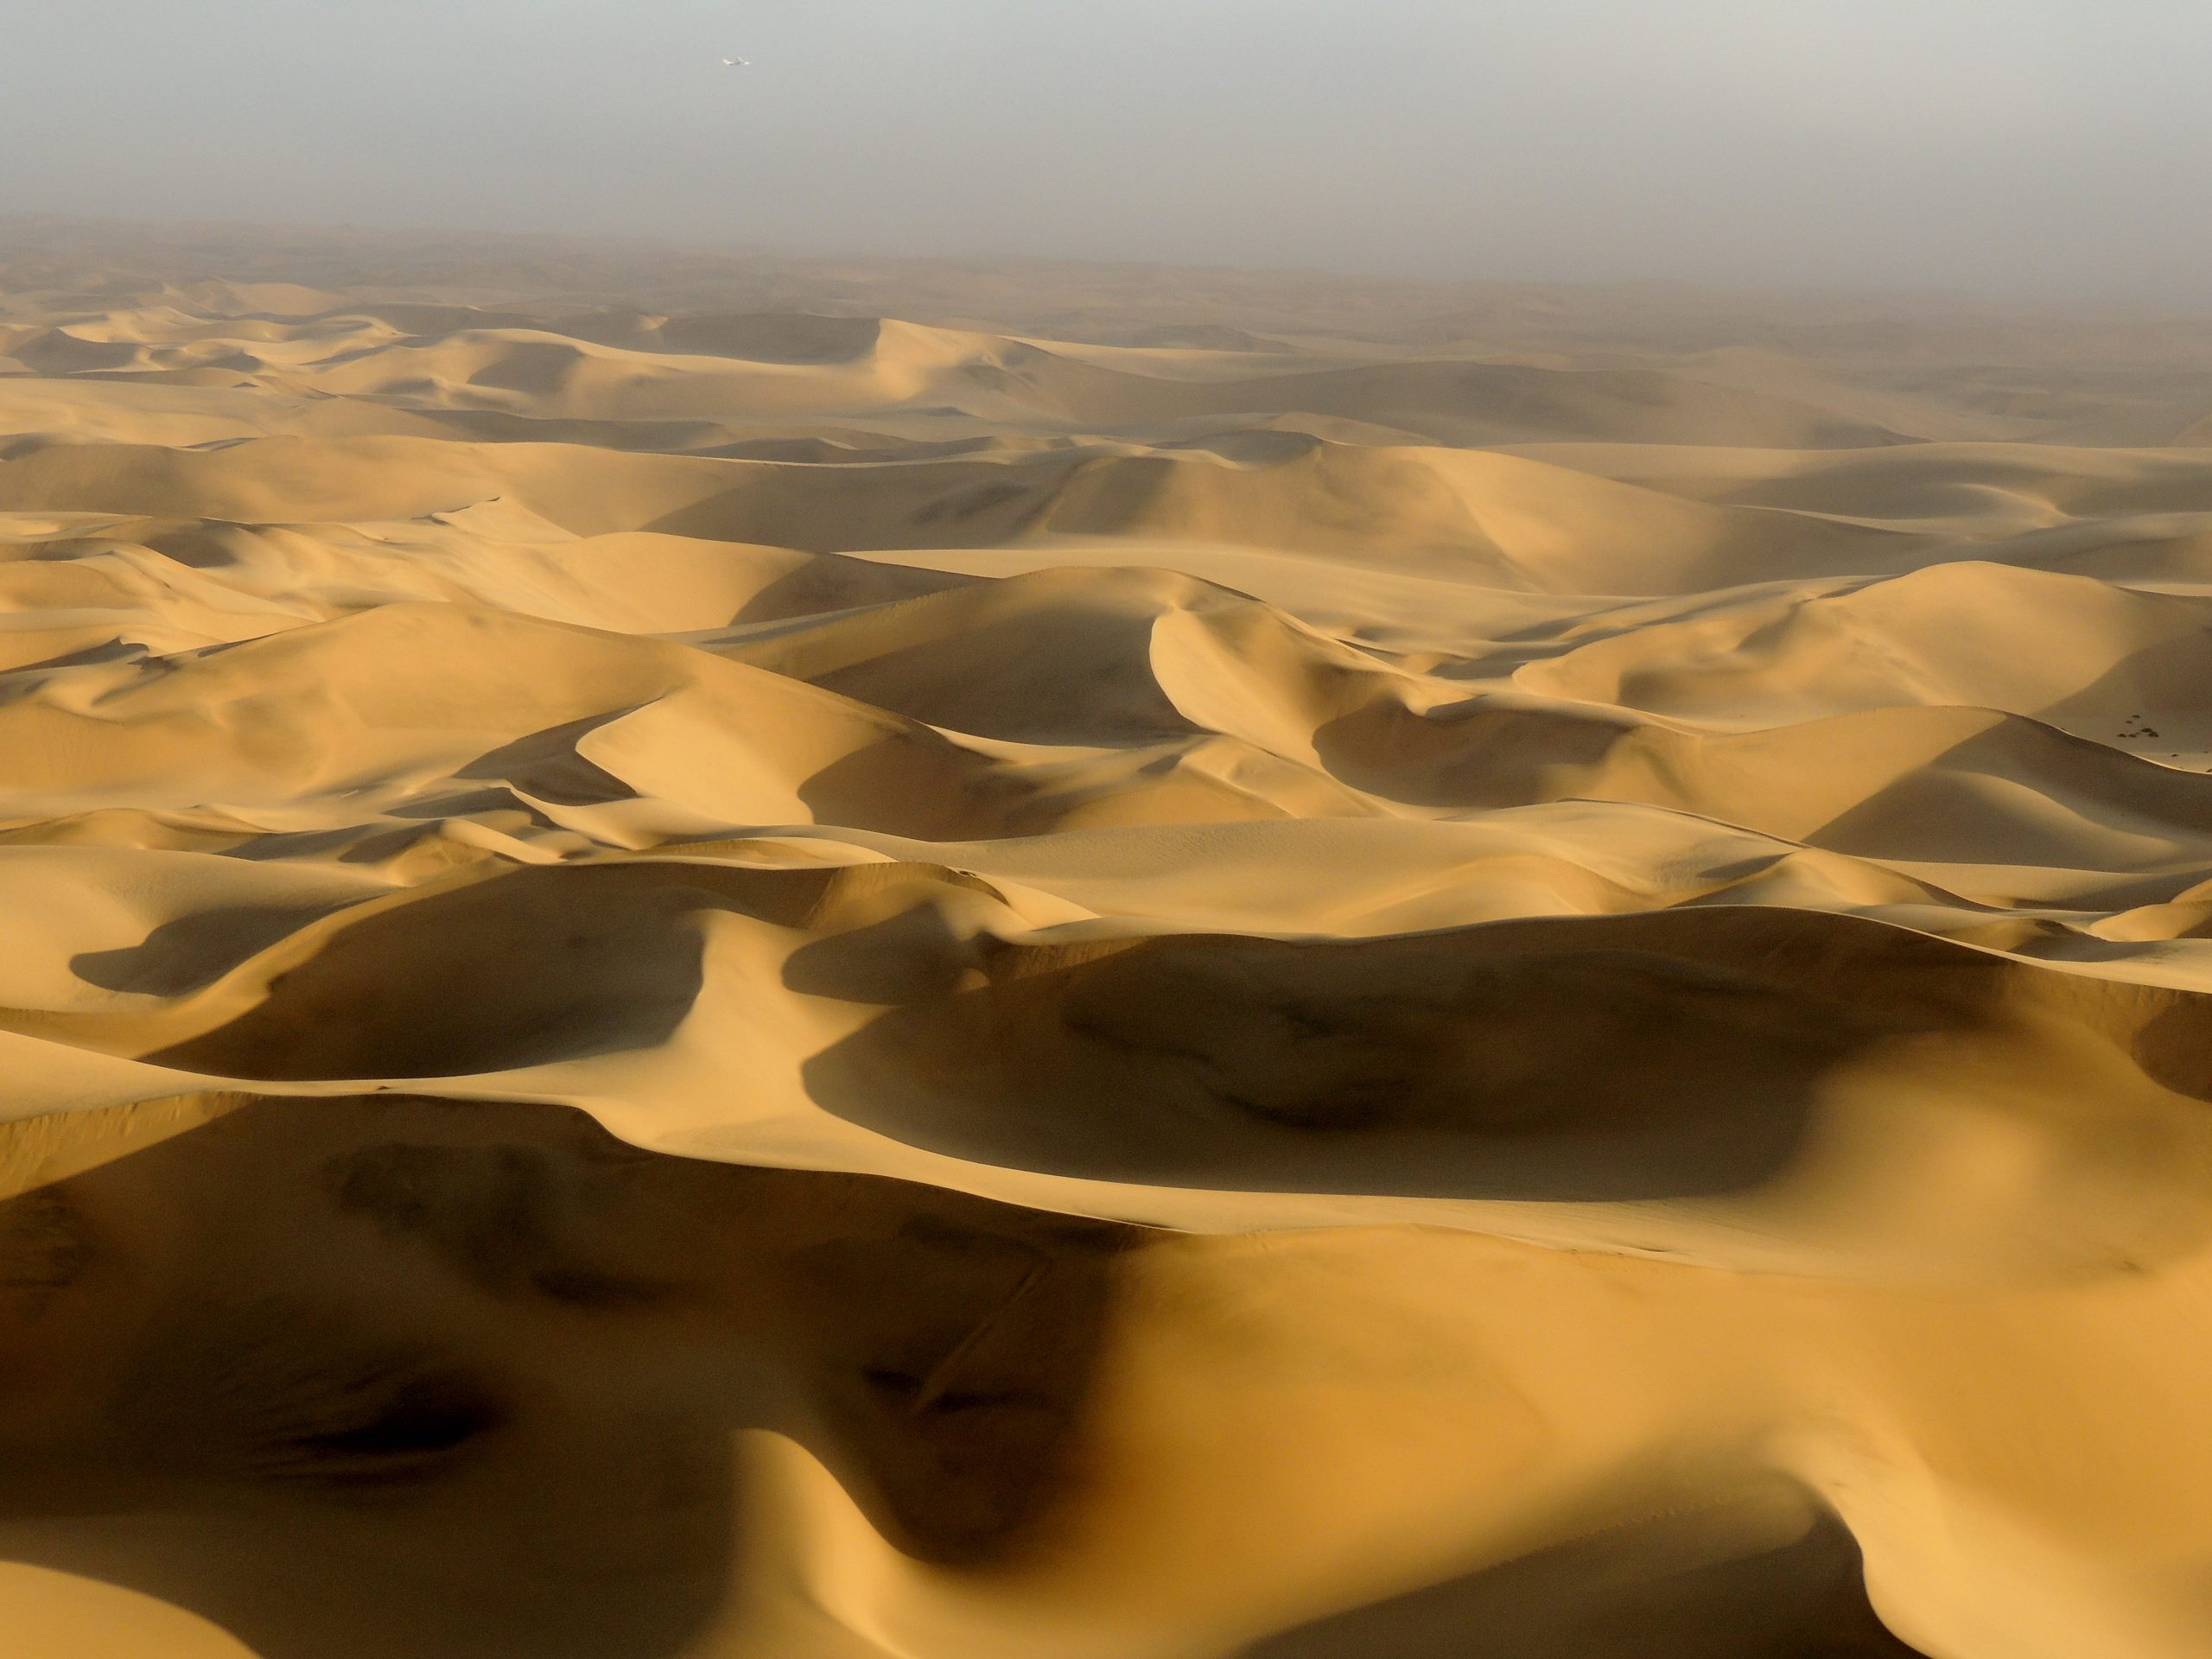 The nearly infinite dune sea